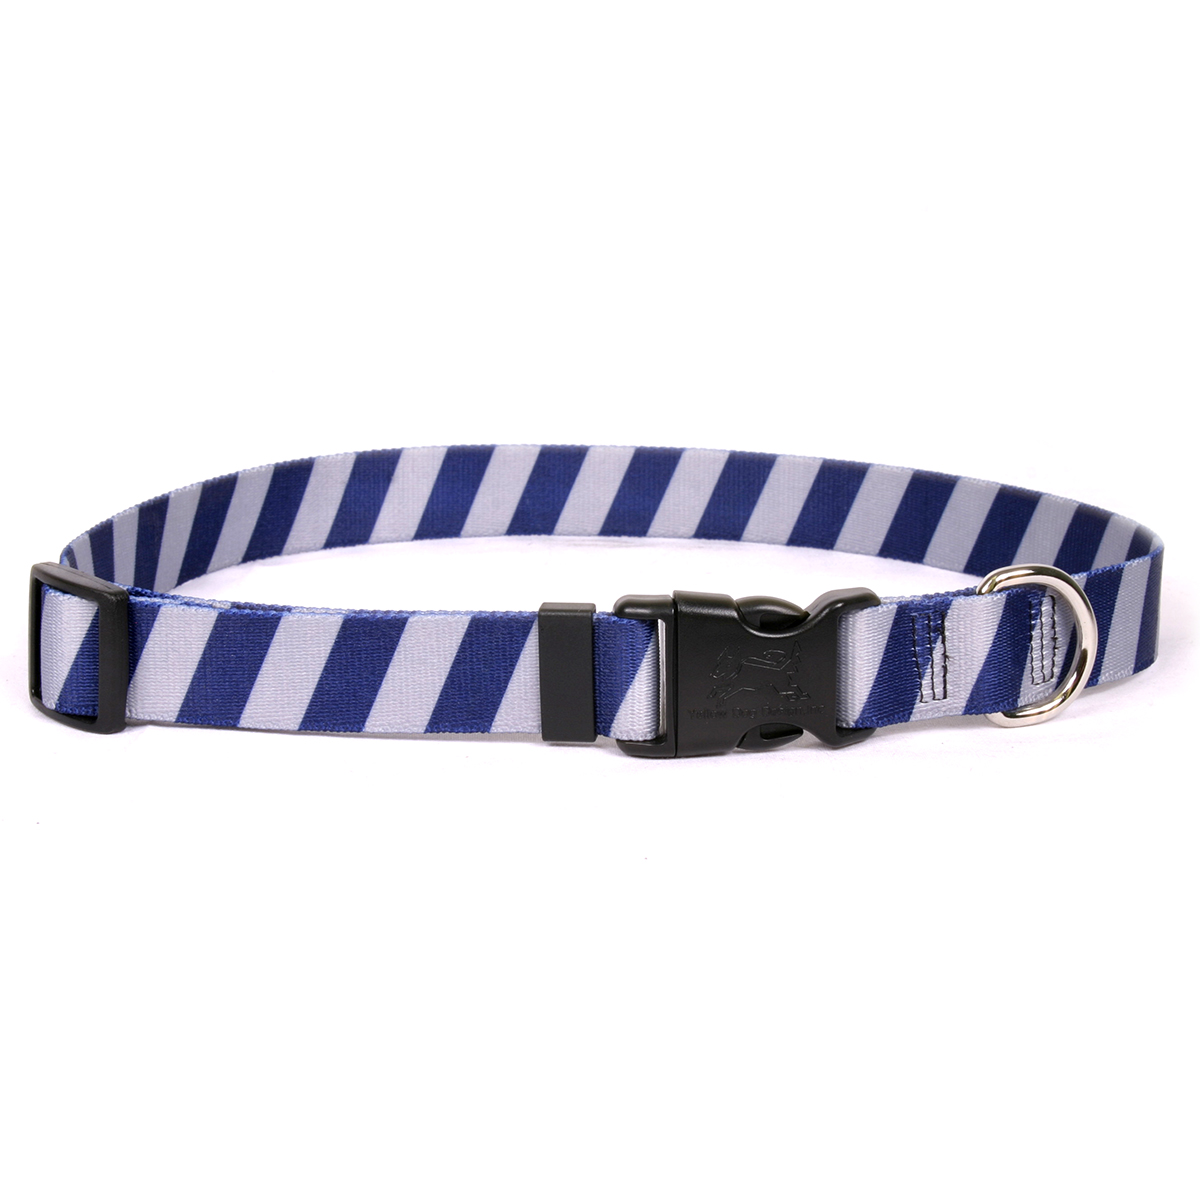 Team Spirit Blue and Silver Standard Collar